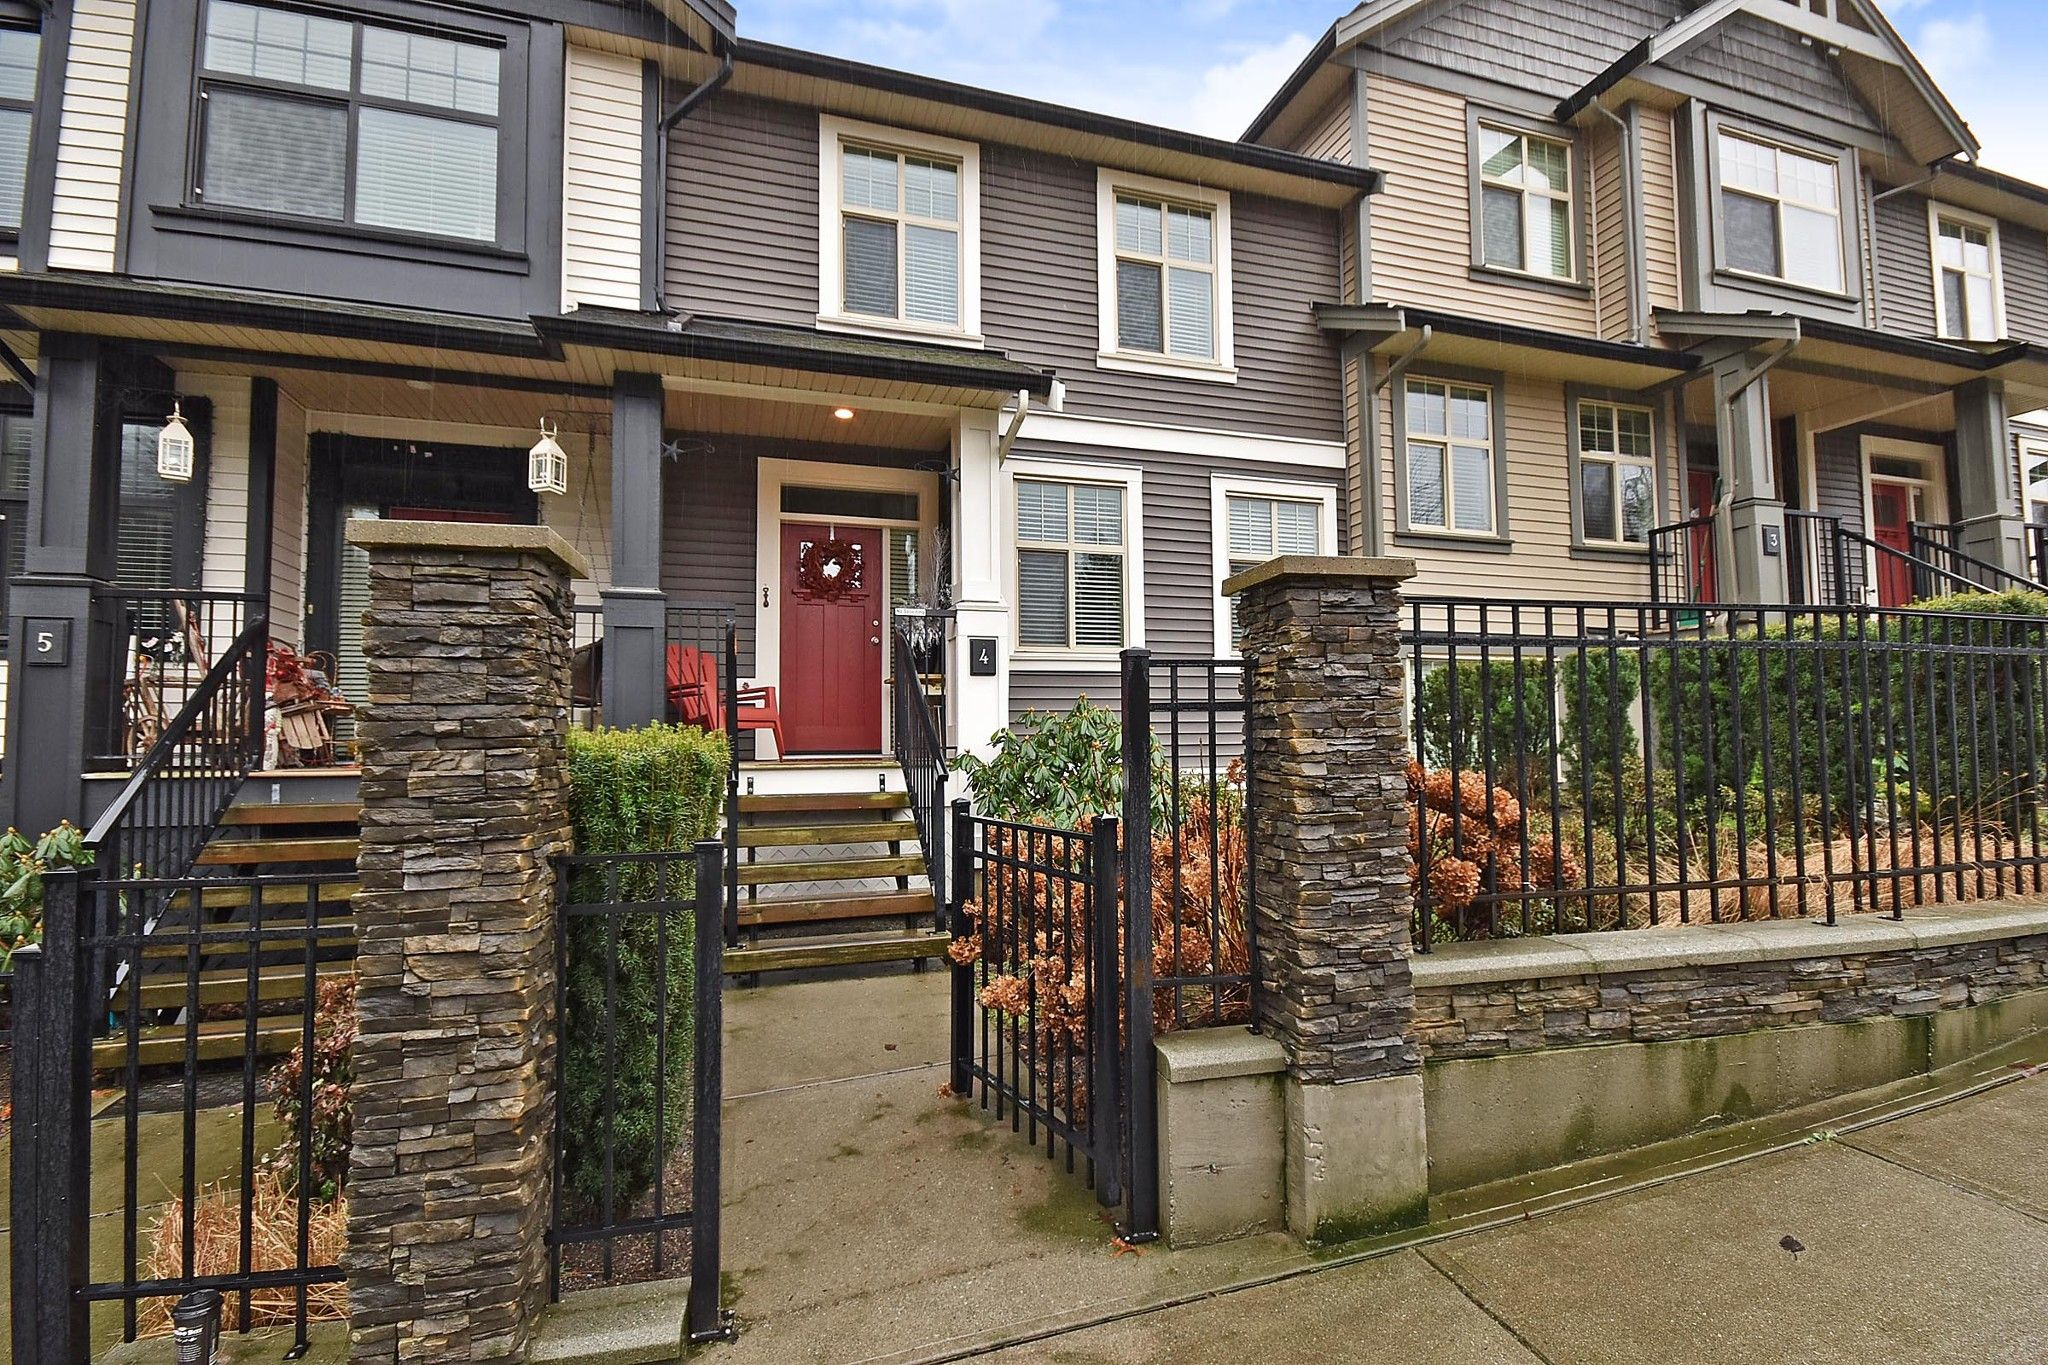 """Main Photo: 4 35298 MARSHALL Road in Abbotsford: Abbotsford East Townhouse for sale in """"Eagles Gate"""" : MLS®# R2434344"""